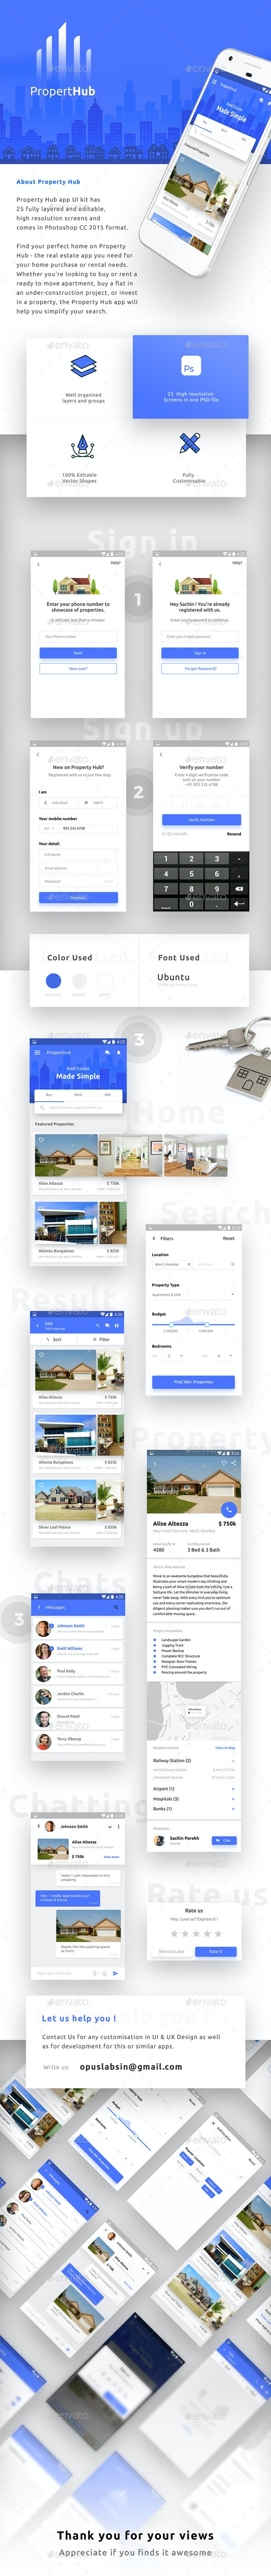 Real Estate App UI Kit for Android & iOS  |  Property Hub - User Interfaces Web Elements